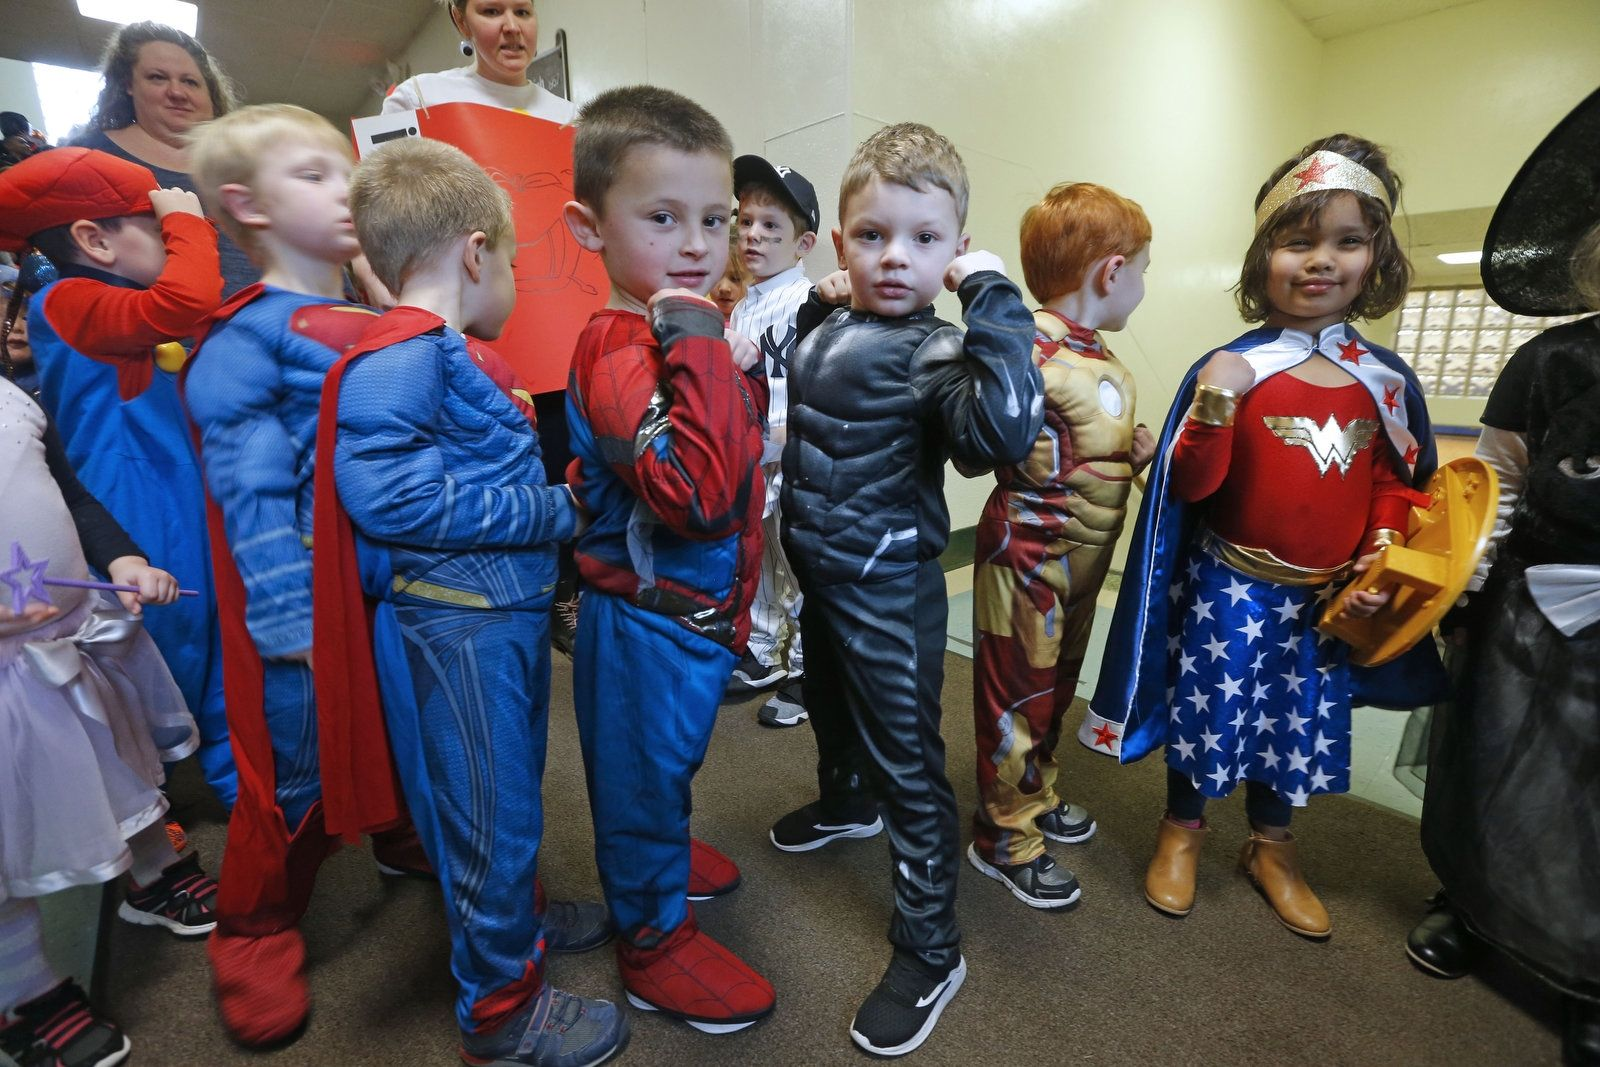 There seems to be a collection of super-heroes roaming the pre-K hallways.